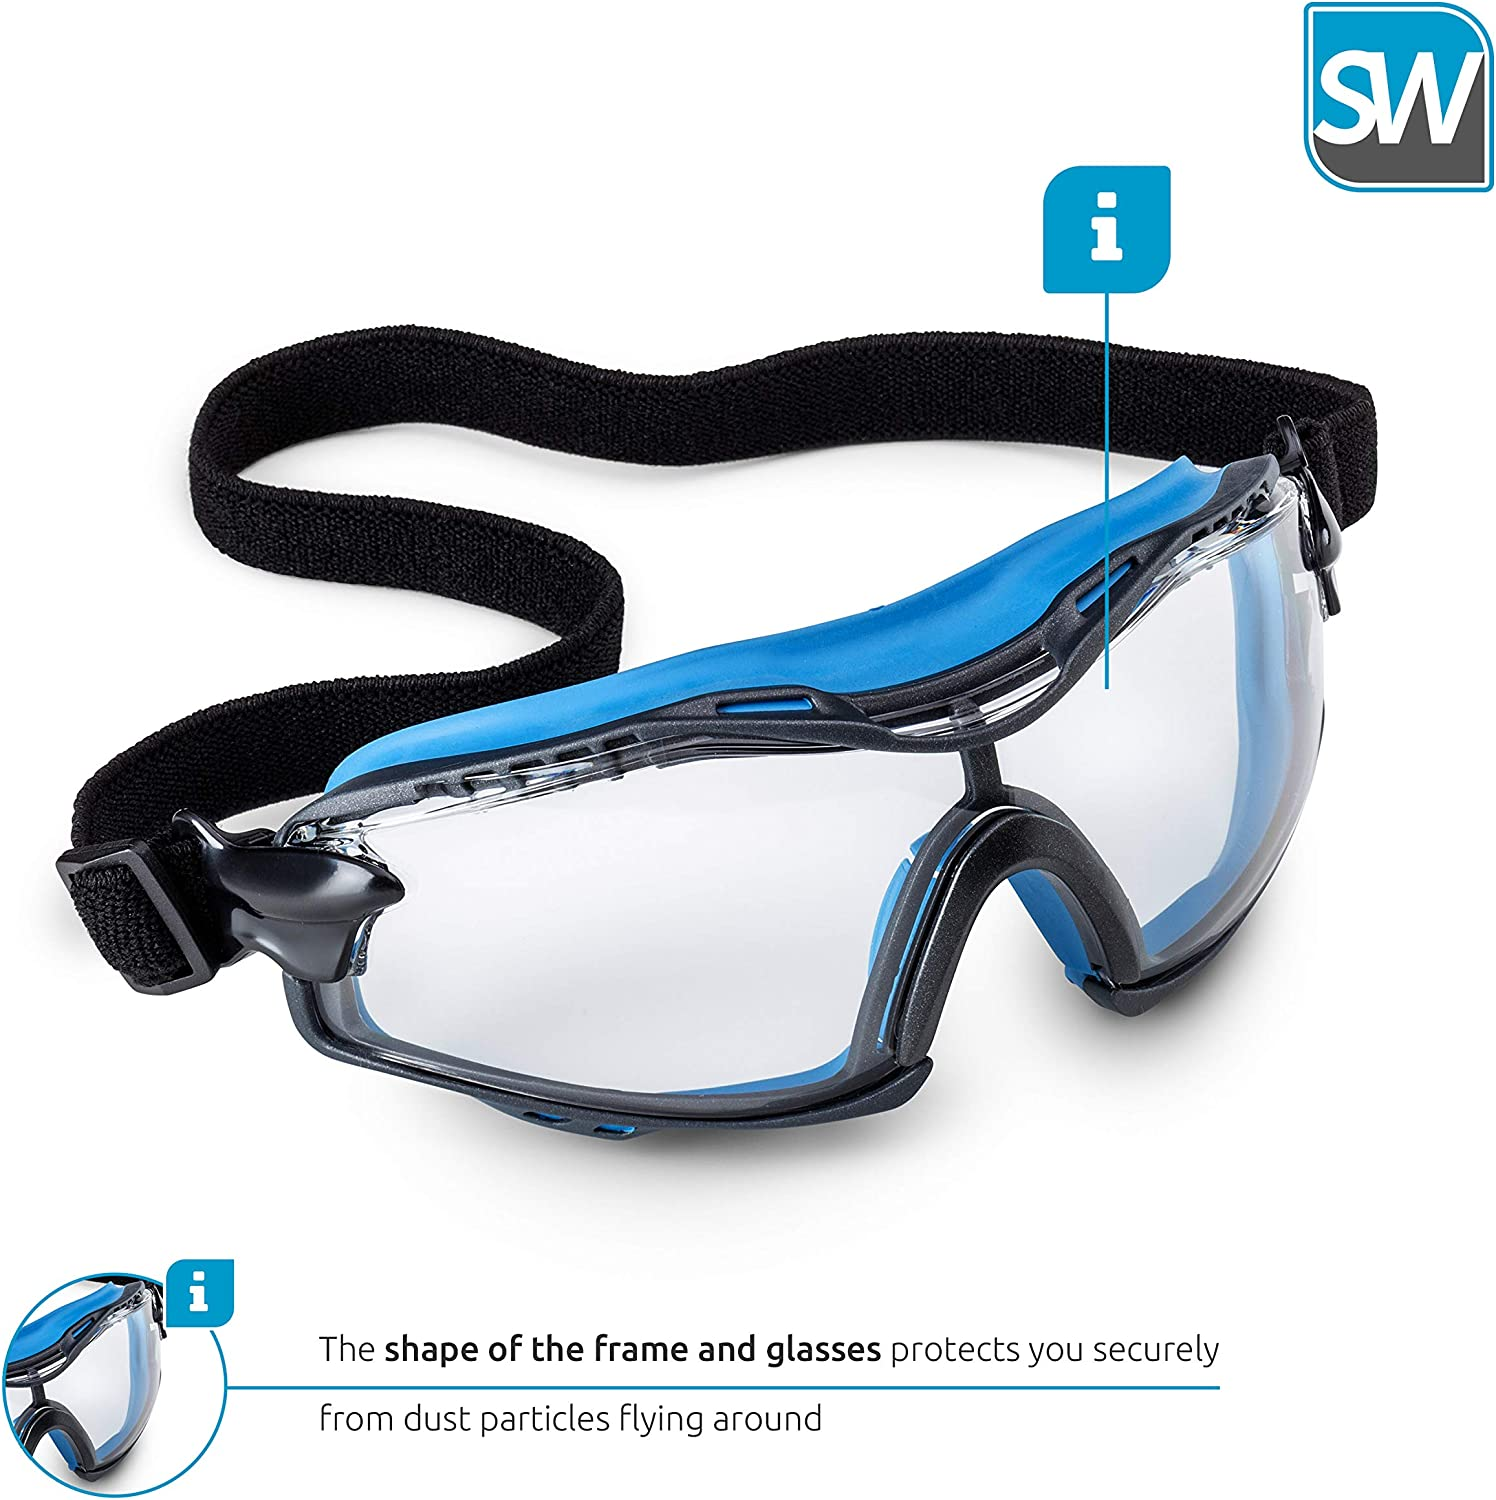 Clear Lens For Men /& Women Blue Eye Protective Safety Glasses for Construction Work SolidWork Safety Goggles with Universal Fit Scratch Resistant Goggle with UV-Protection and Anti-Fog